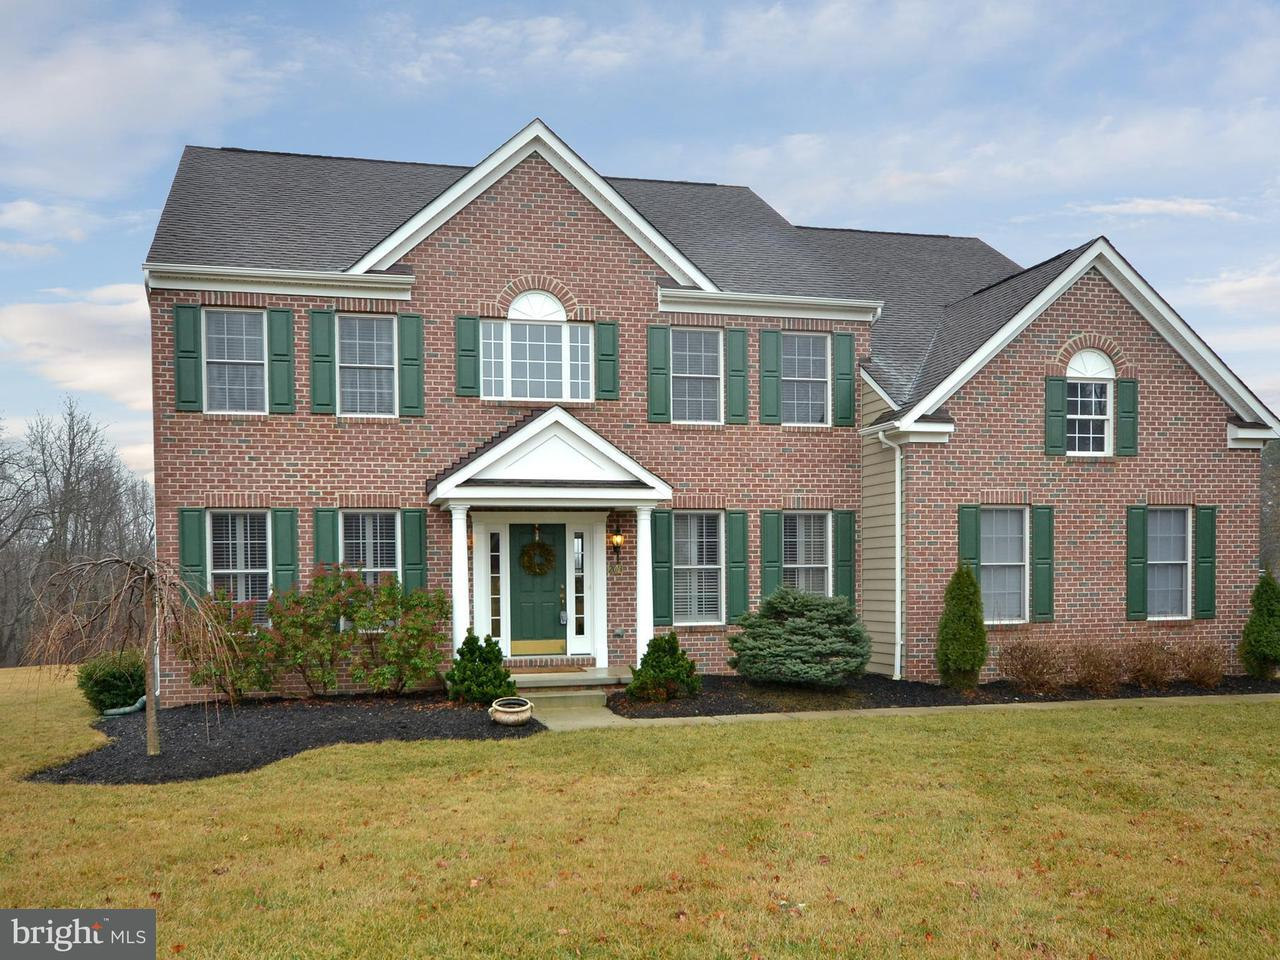 Single Family Home for Sale at 2013 Trout Farm Road 2013 Trout Farm Road Jarrettsville, Maryland 21084 United States